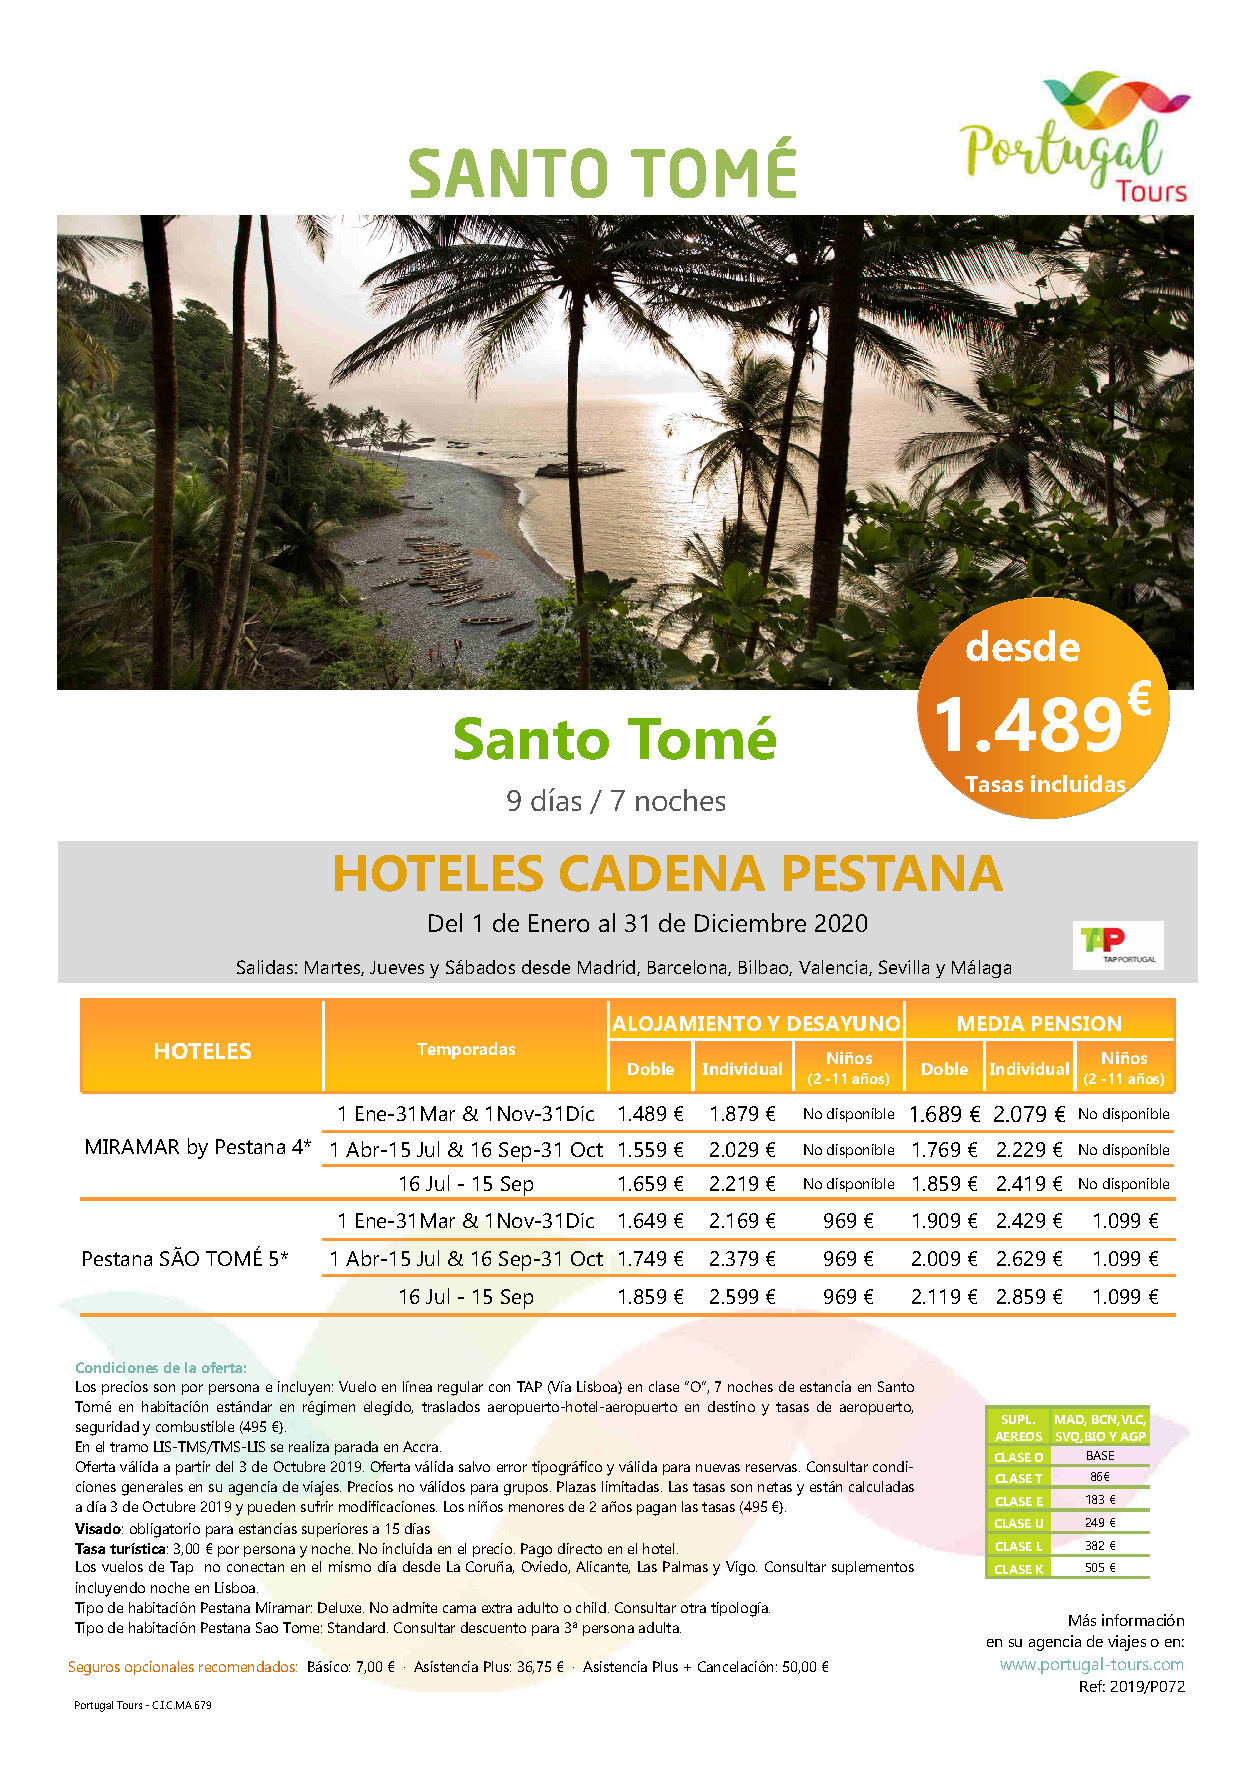 Oferta Portugal Tours Estancias en Santo Tome 2020